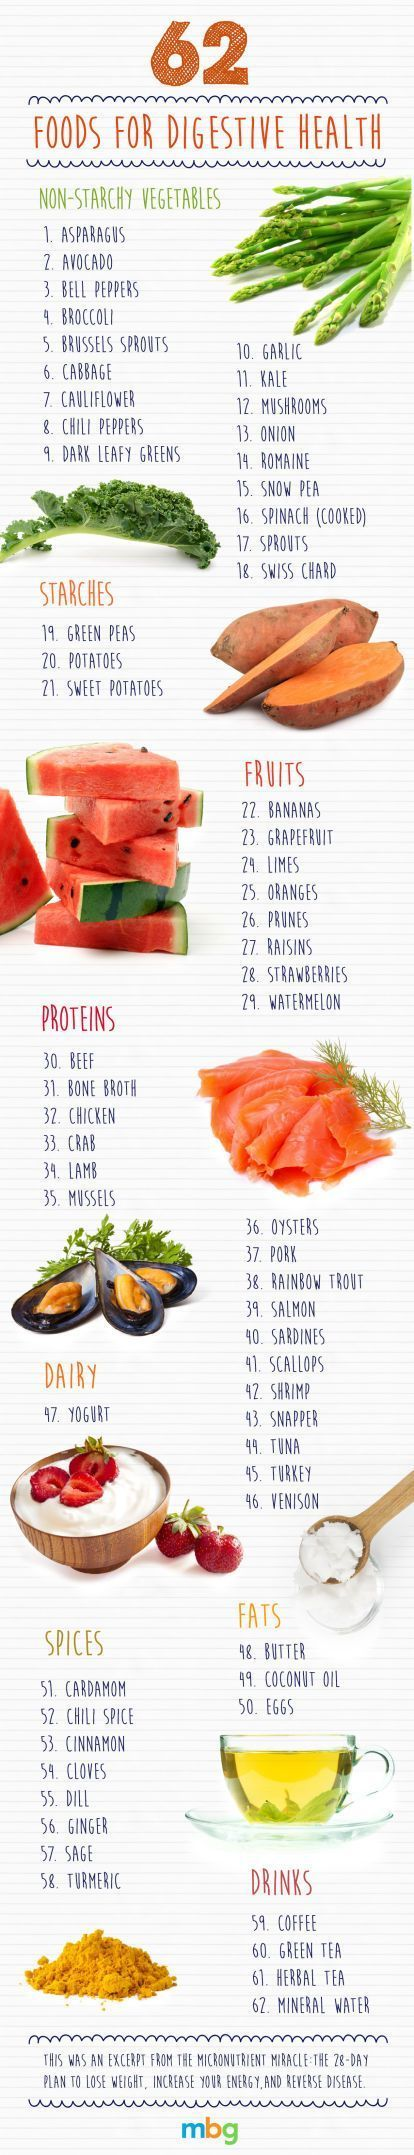 62 Foods For Digestive Health!